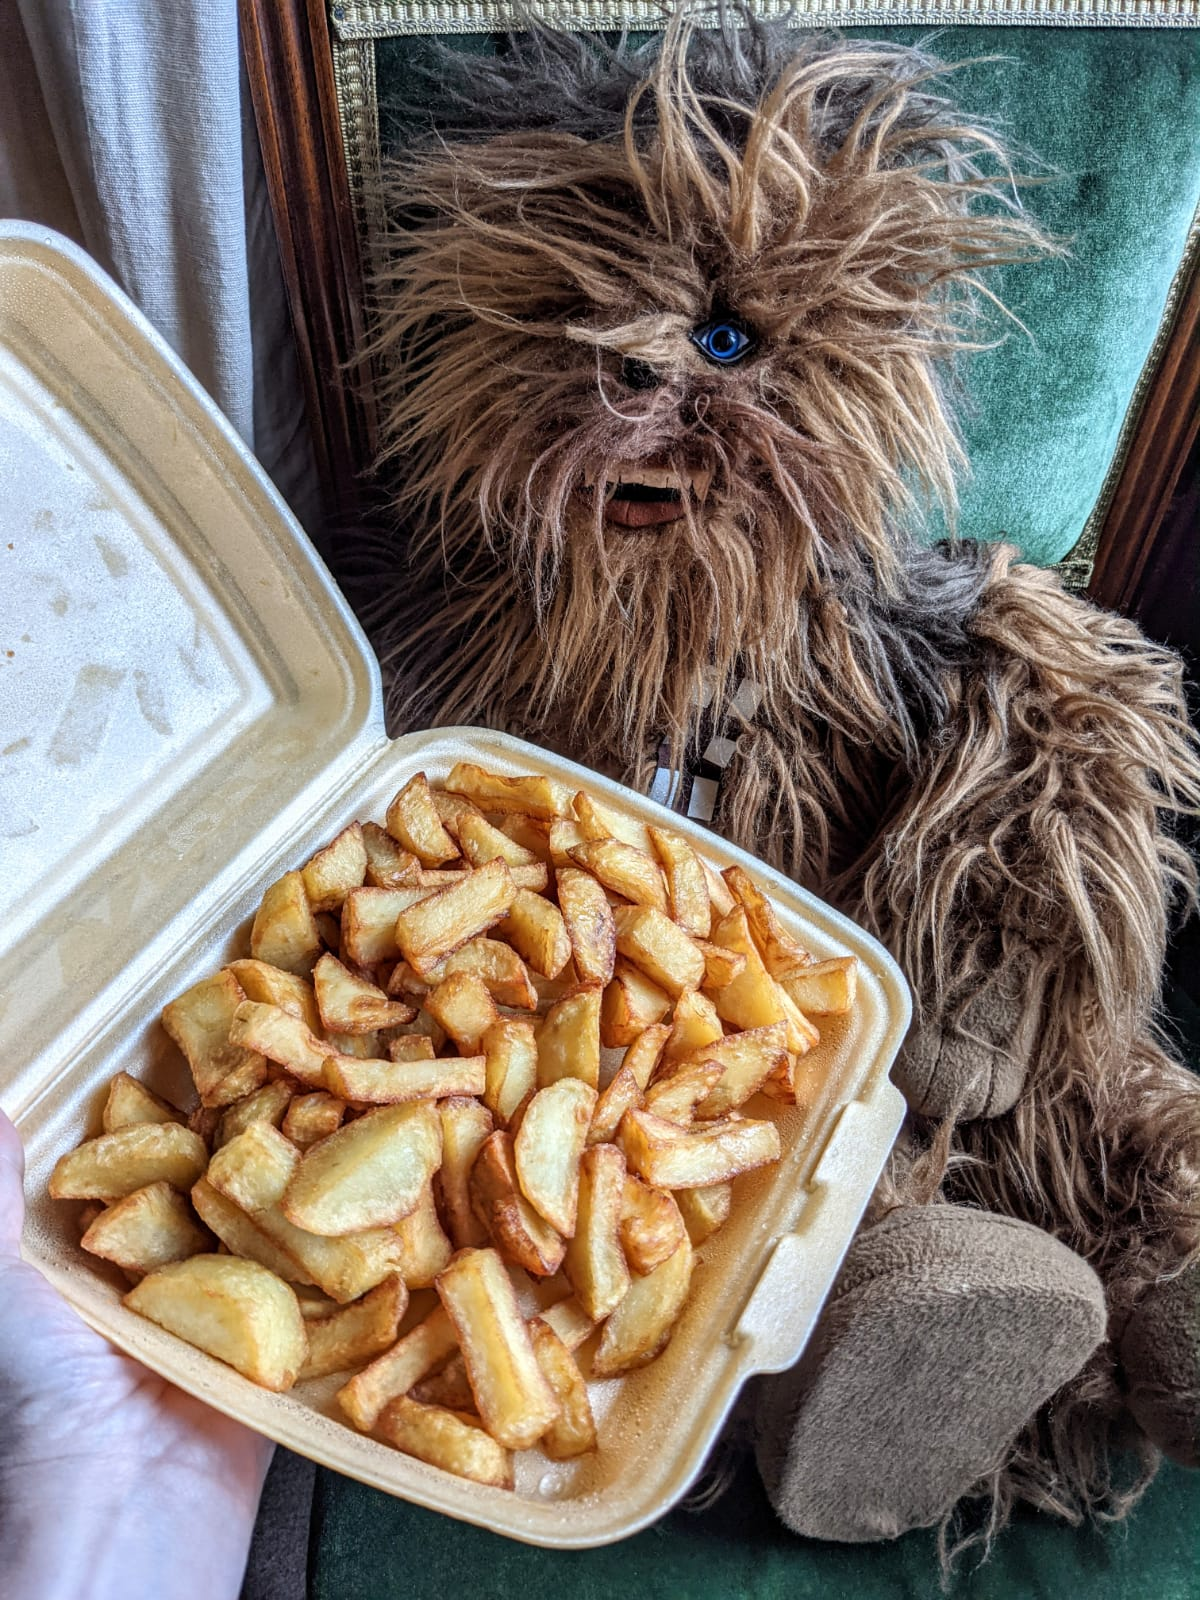 portion of chips